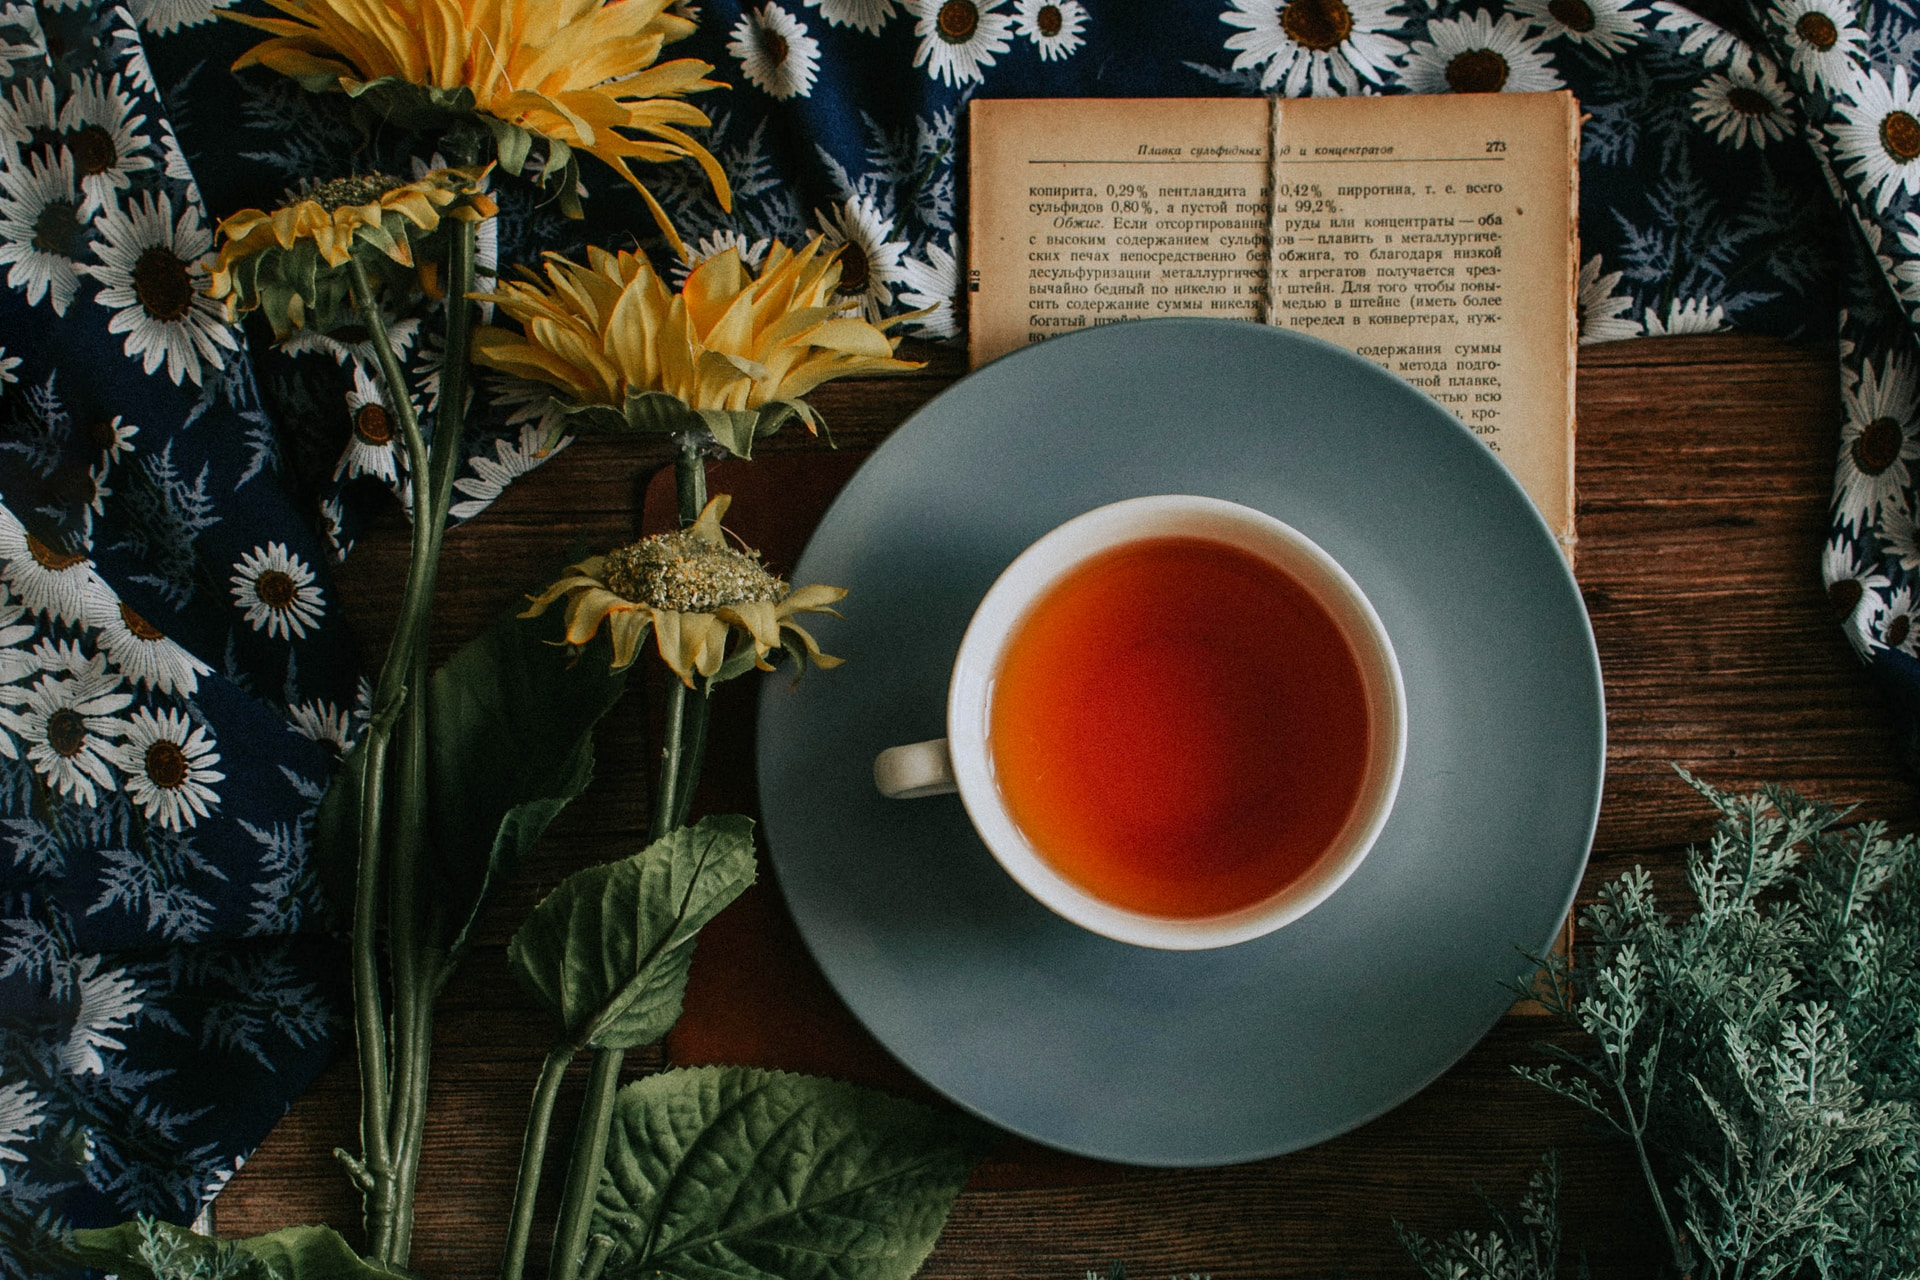 cup of tea on saucer